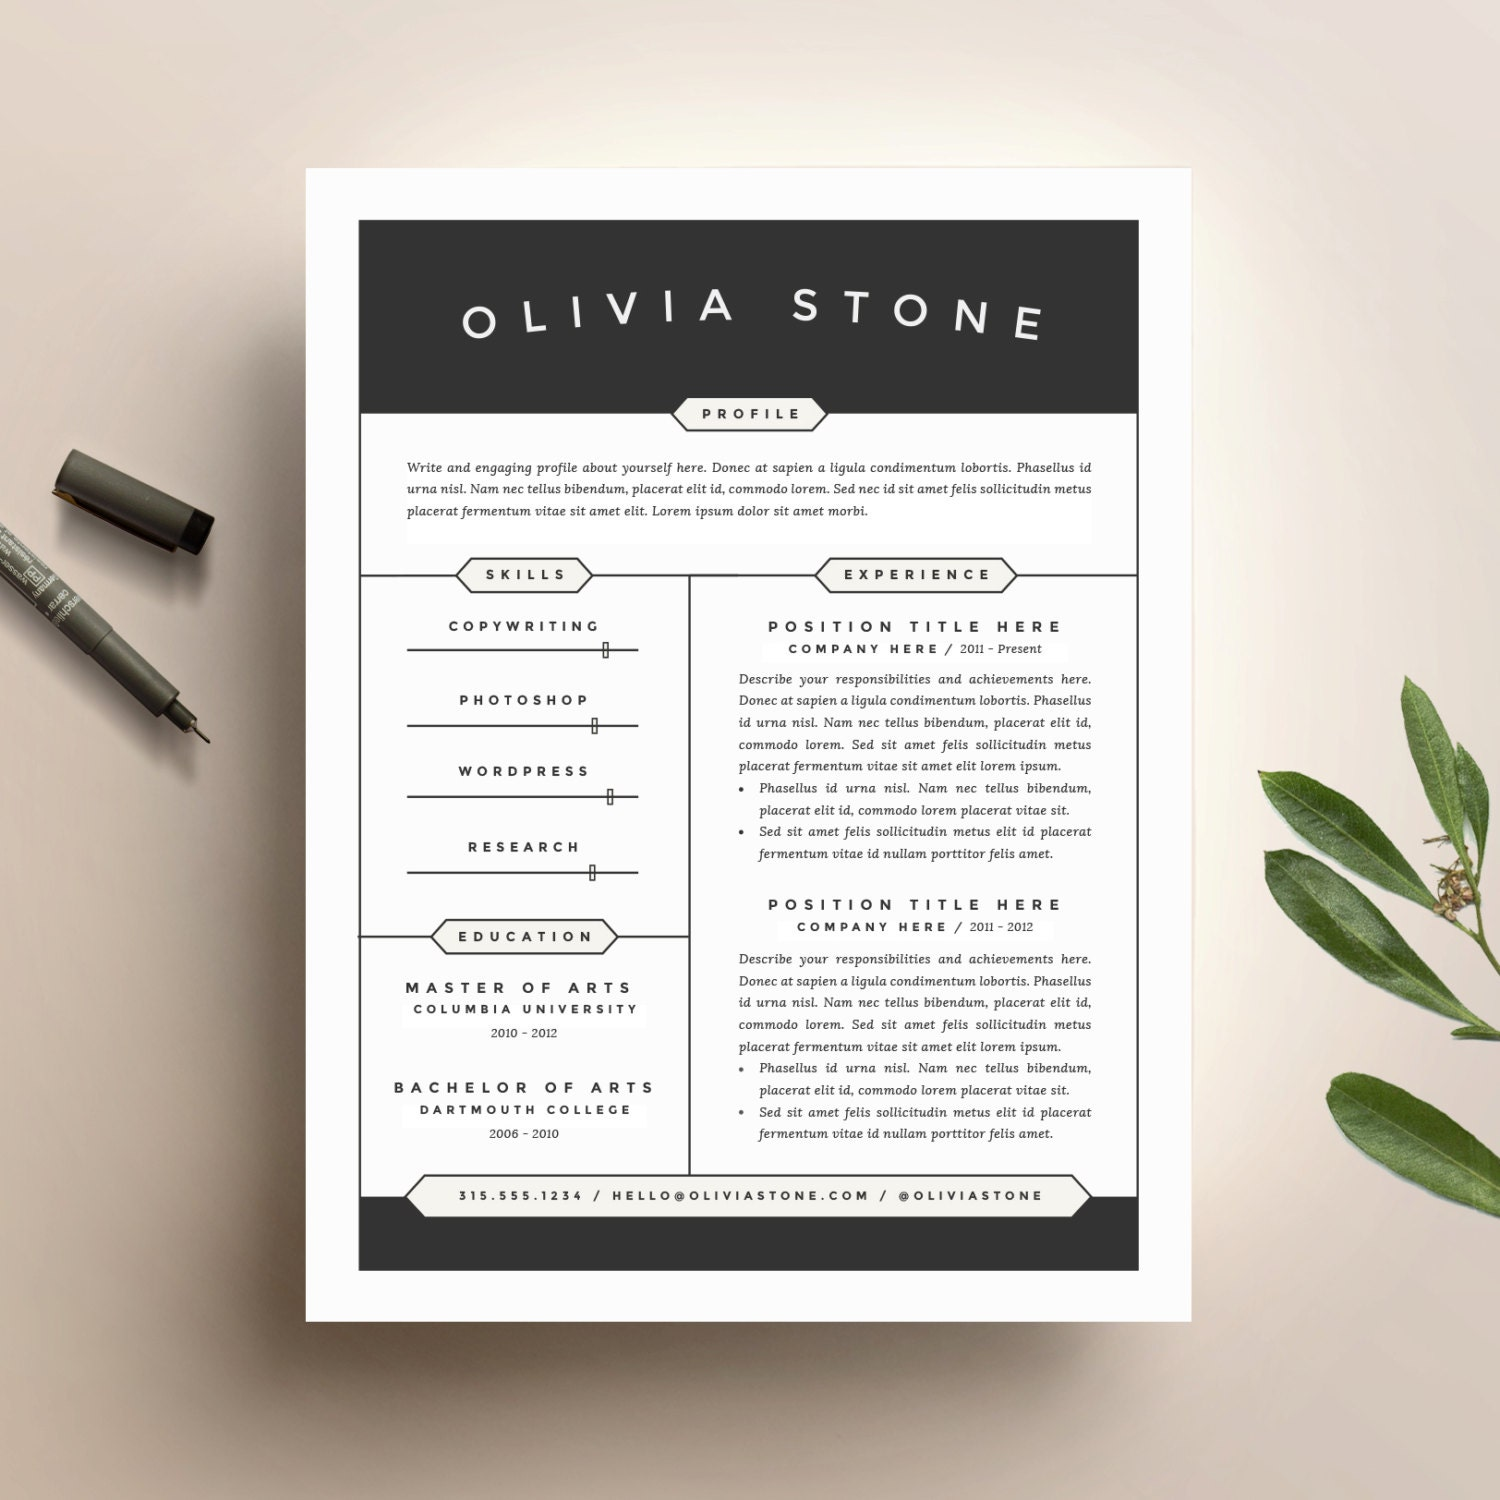 Awesome Massage Therapist Cv Massage Therapist Resume Cover Letter Sample Massage  Therapy Resume Template Massage Therapy Resume